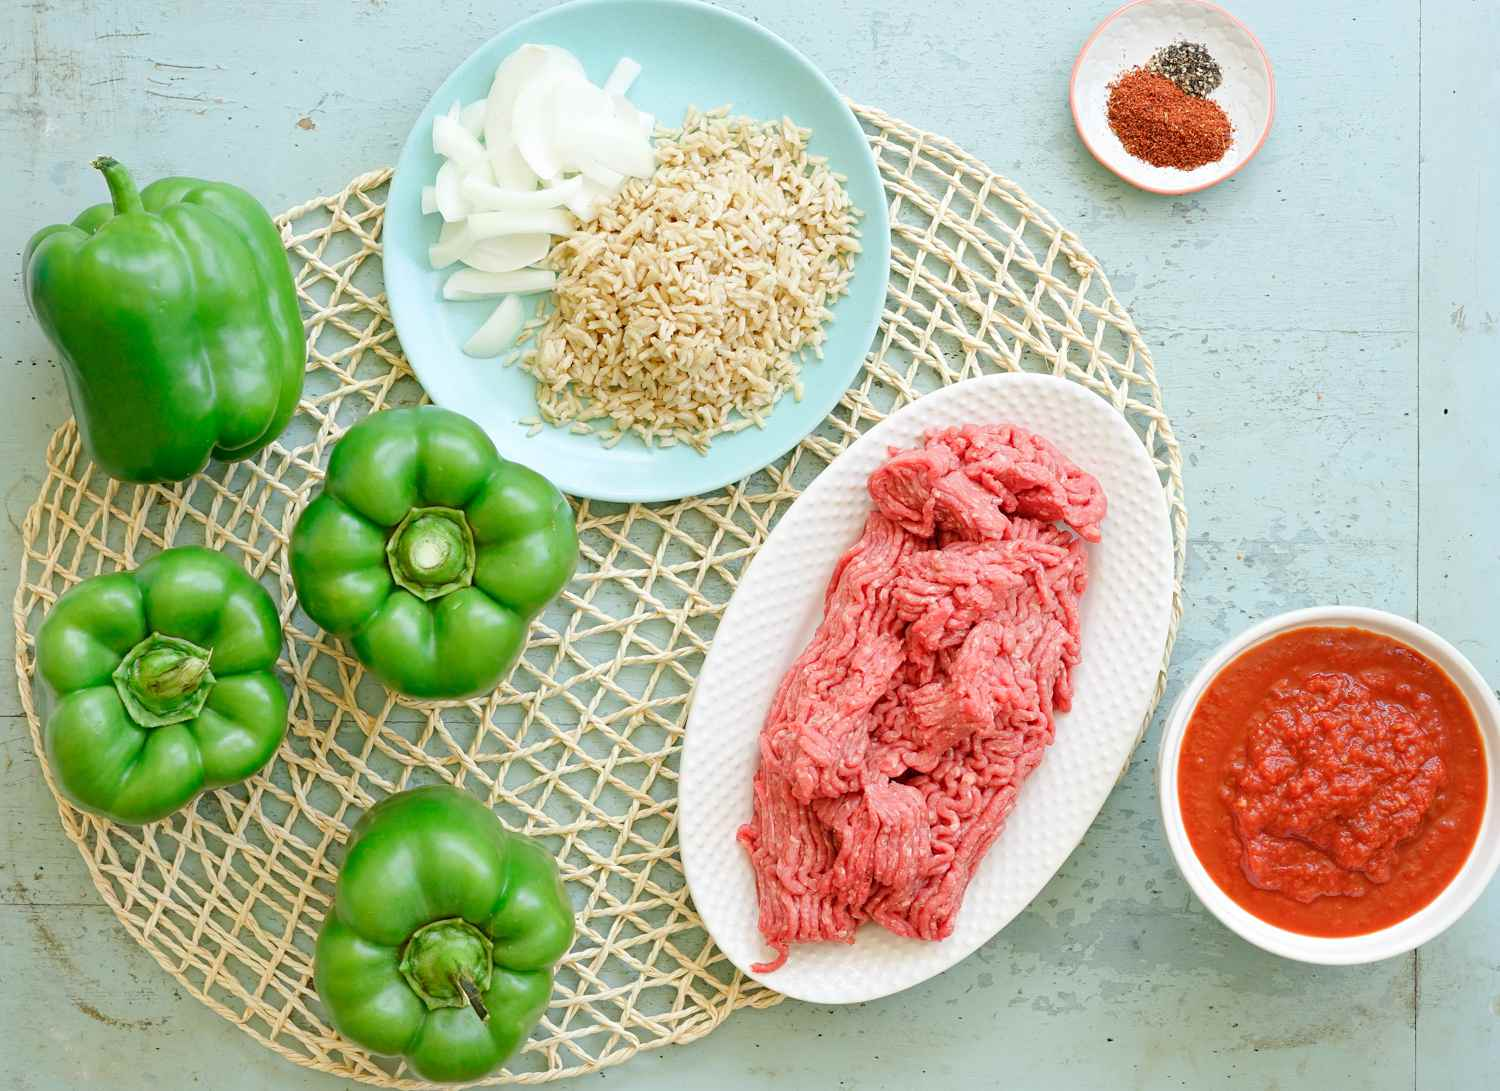 Stuffed green peppers with rice ingredients